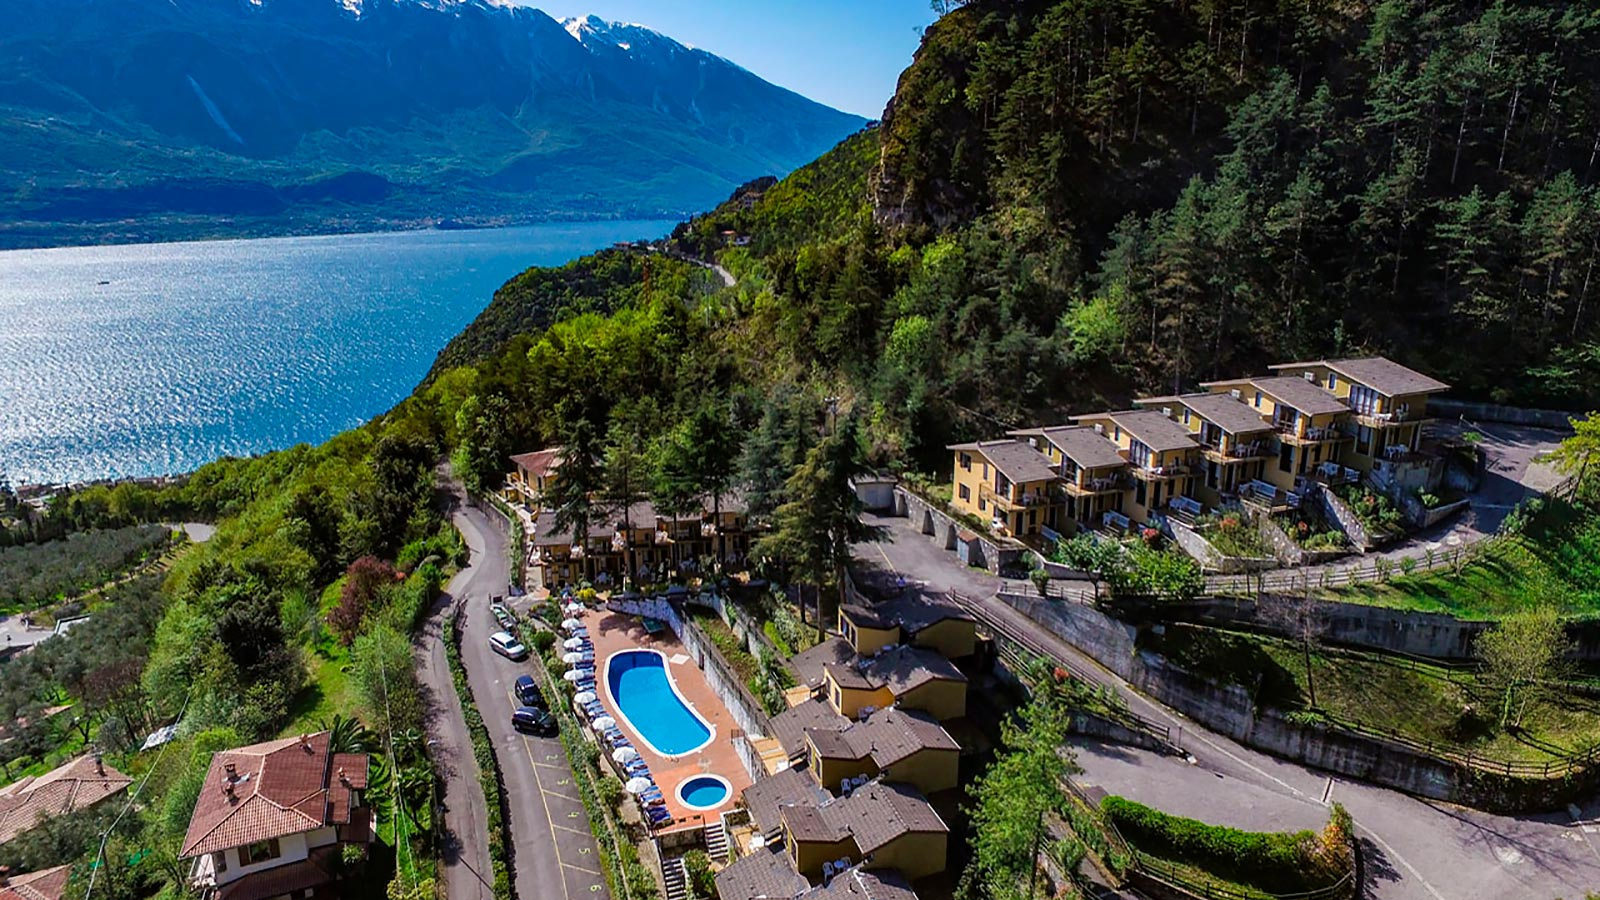 Residence Oasi at Limone sul Garda panoramic view